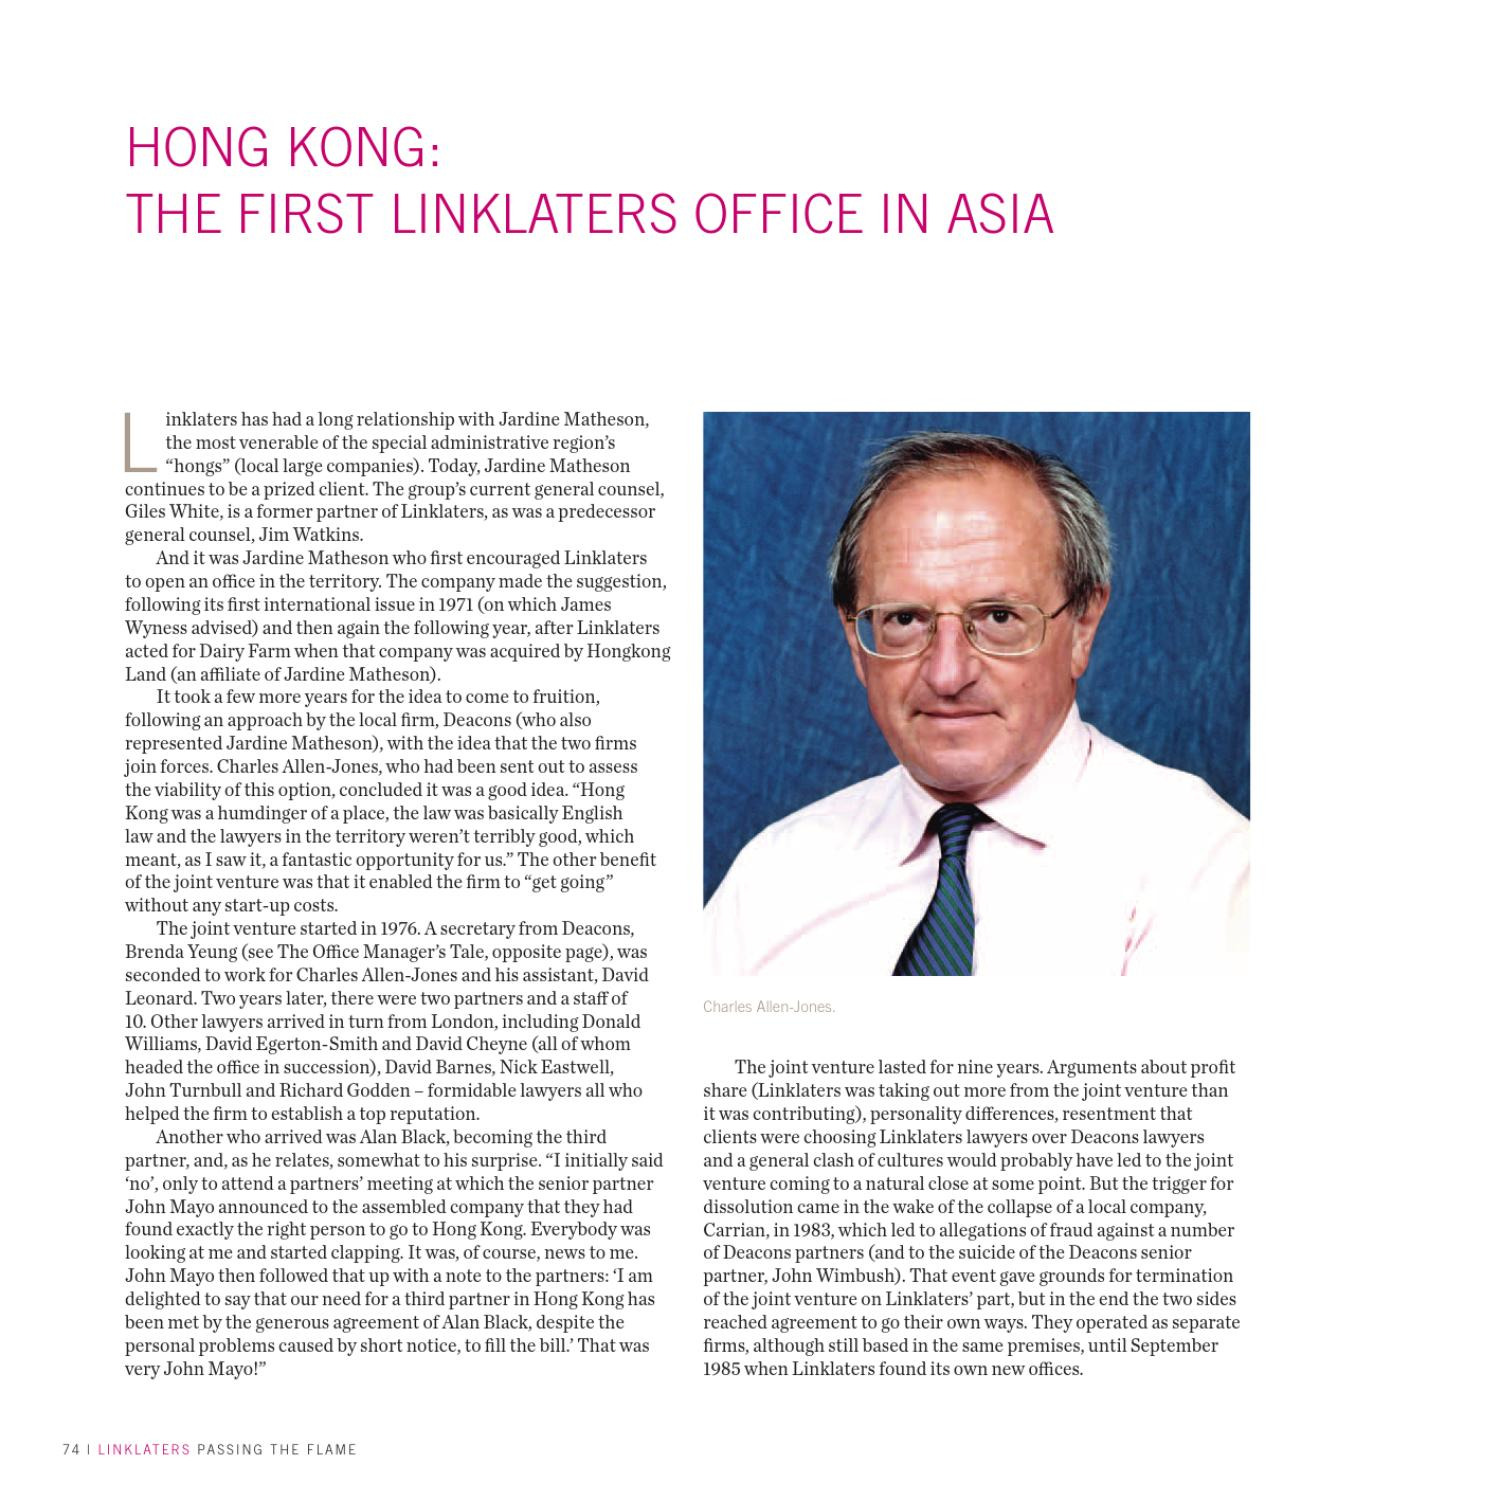 Jardine Matheson Hong Kong: Passing The Flame By Linklaters (page 82)